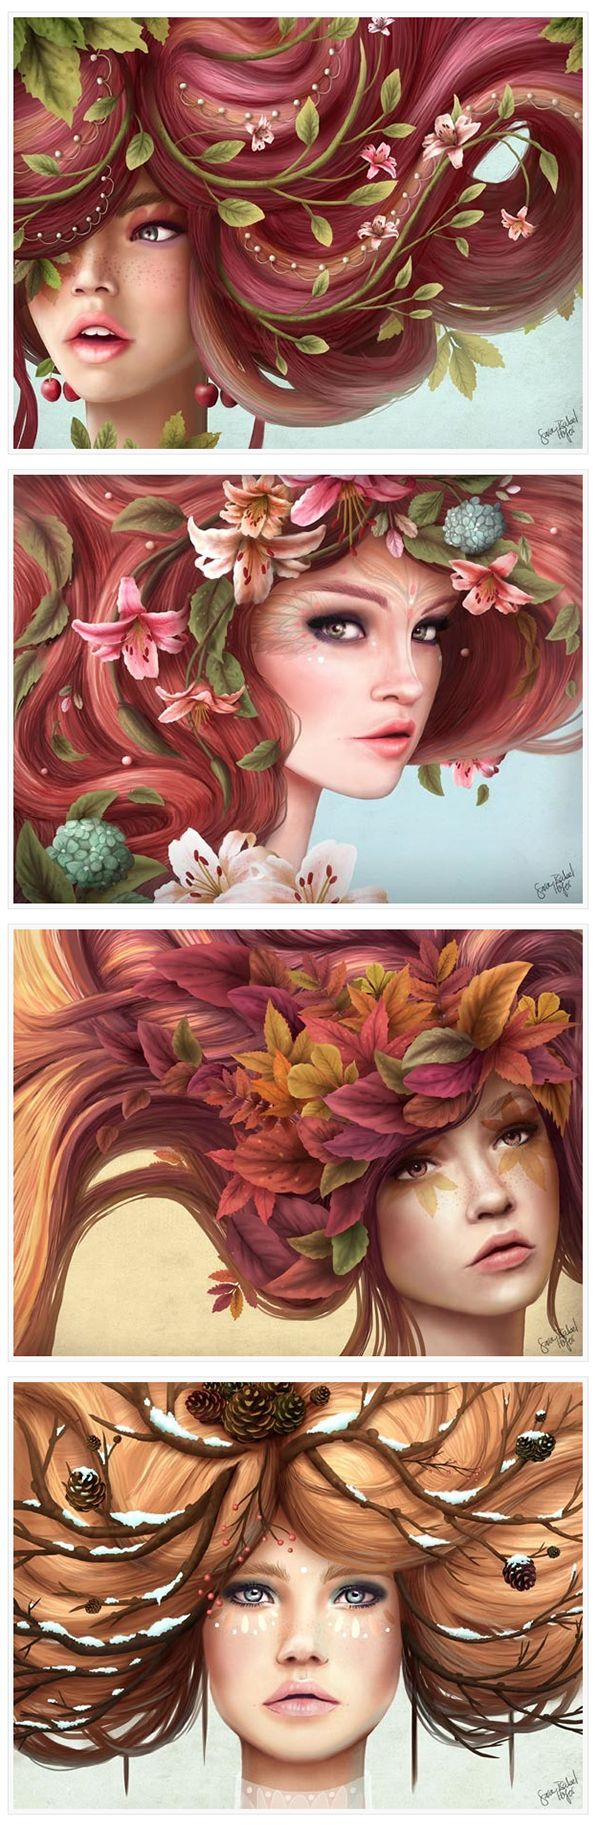 "4 Seasons ""Spring-Summer-Fall-Winter"" by Sara Isabel Hoyos. - Gives me the feeling of extreme care in nature.                                                                                                                                                                                 More"